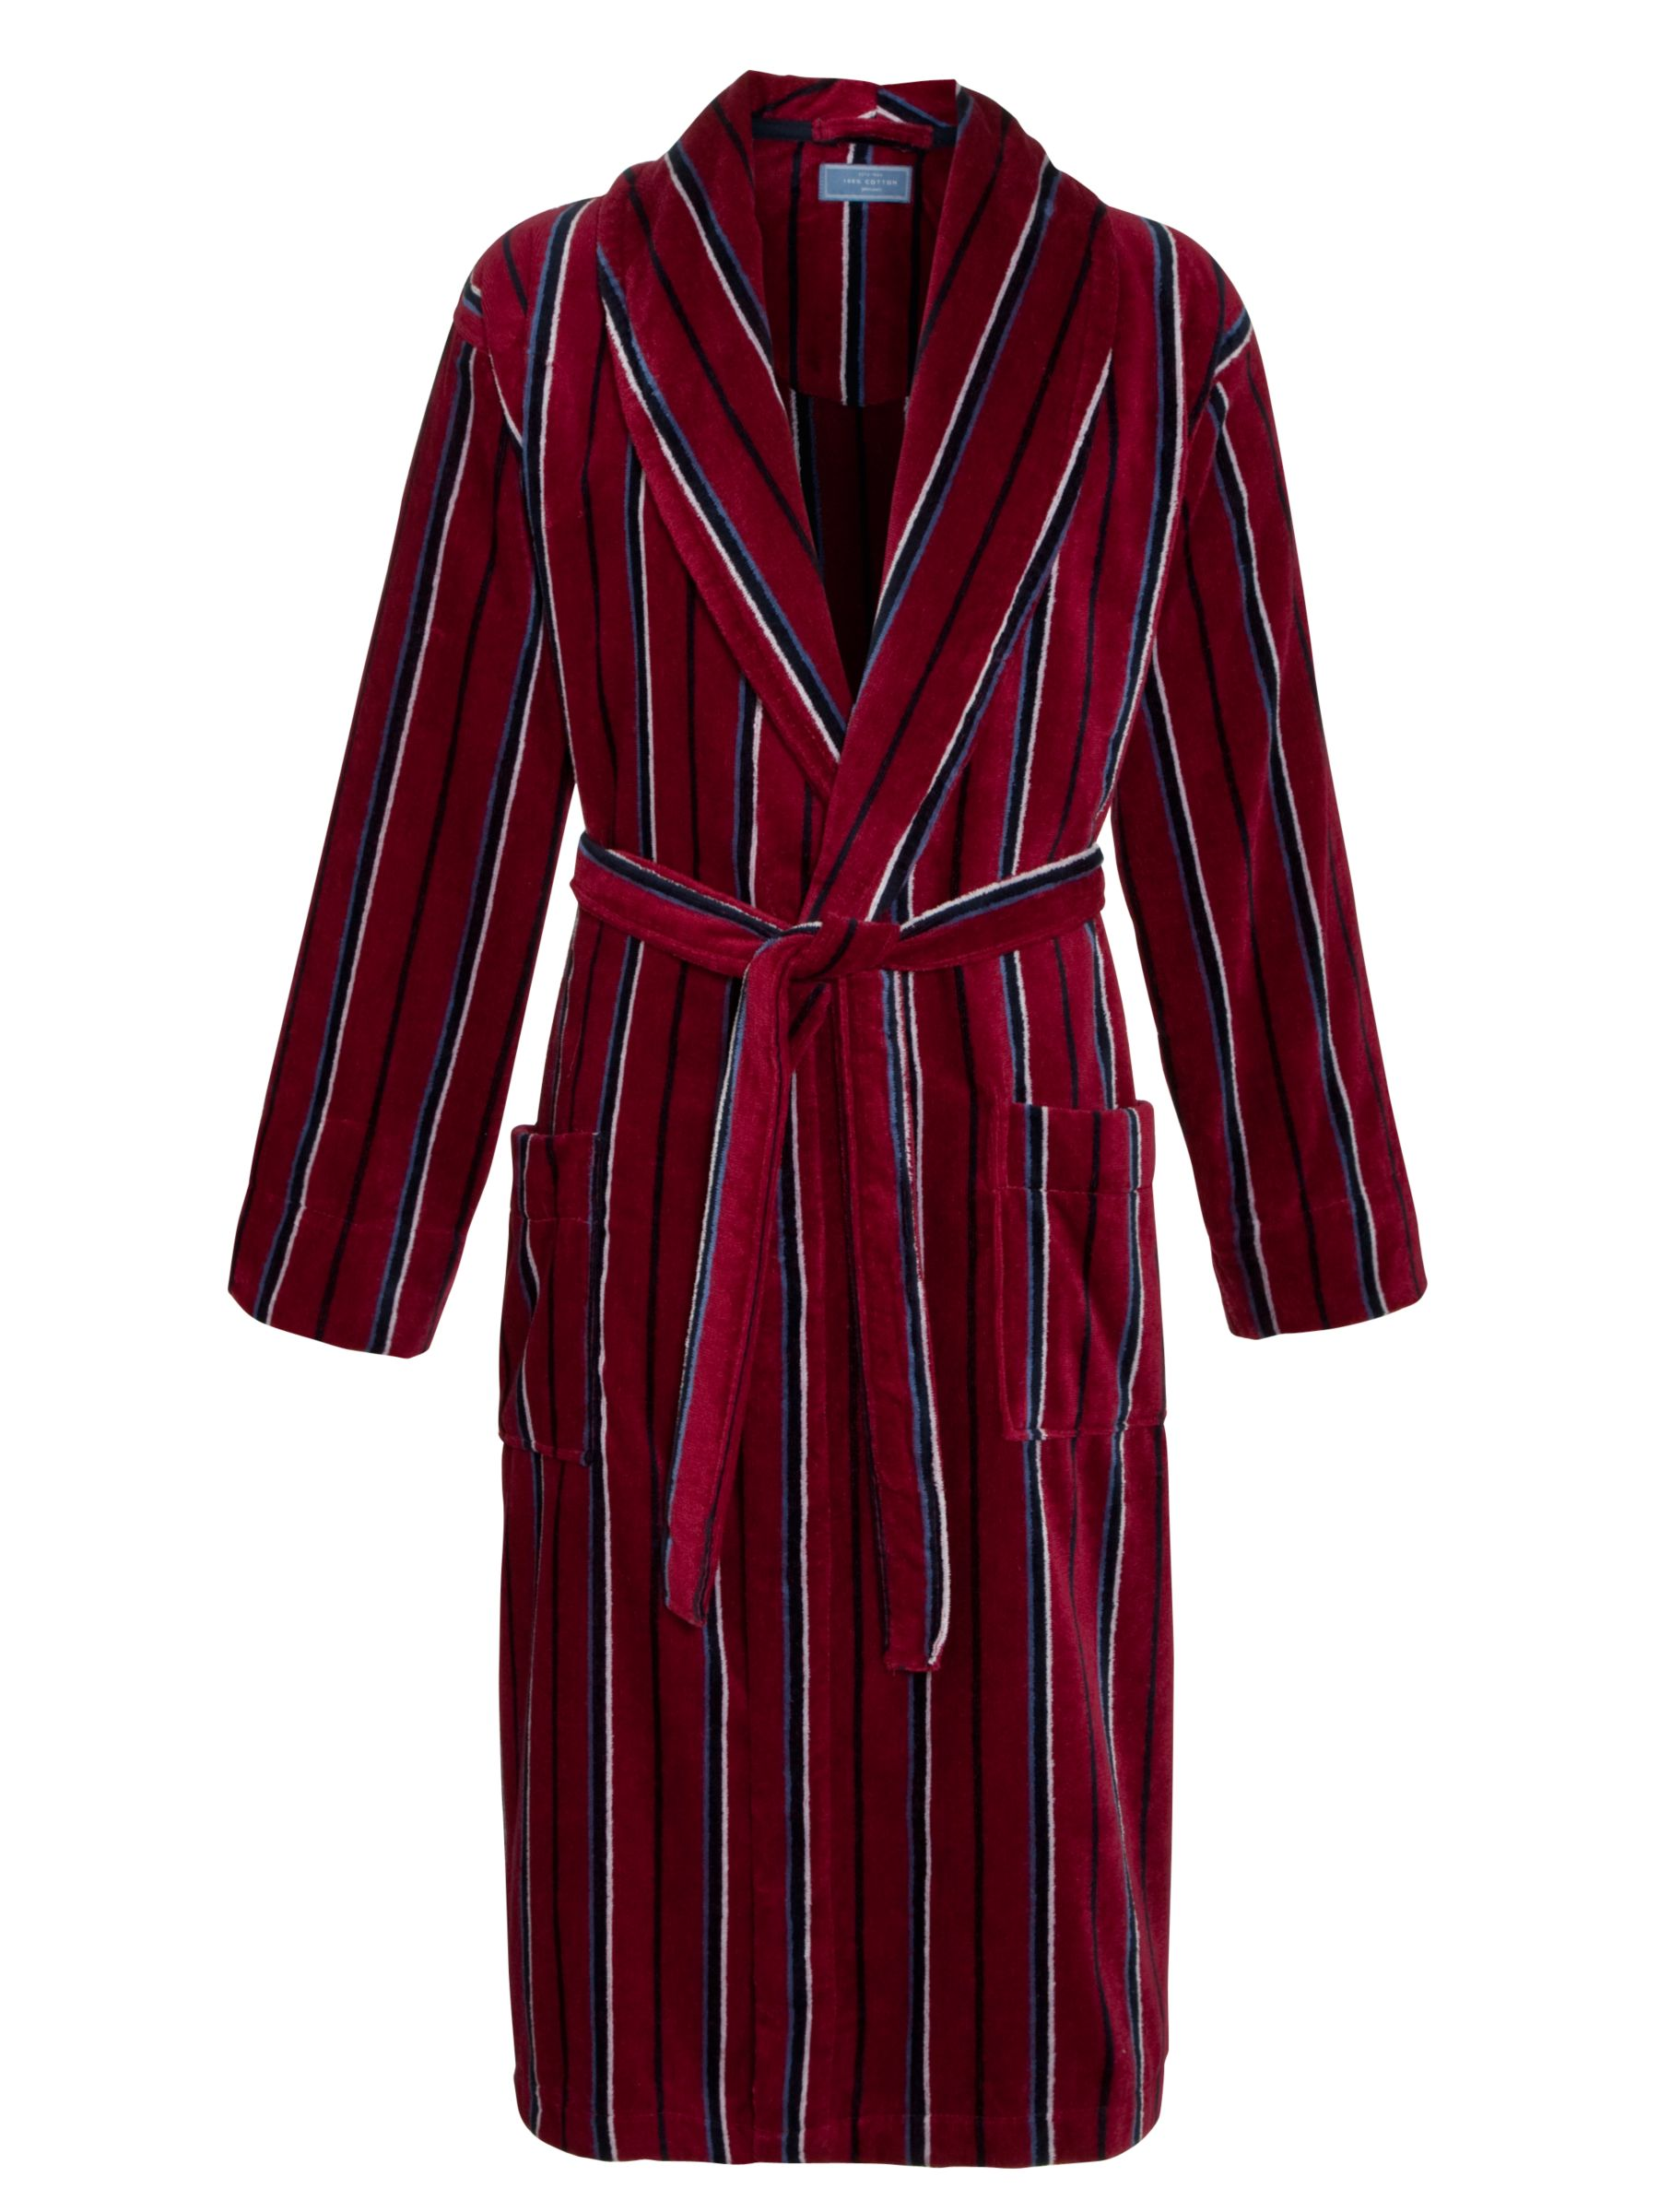 John Lewis Striped Fleece Robe, Red/Blue